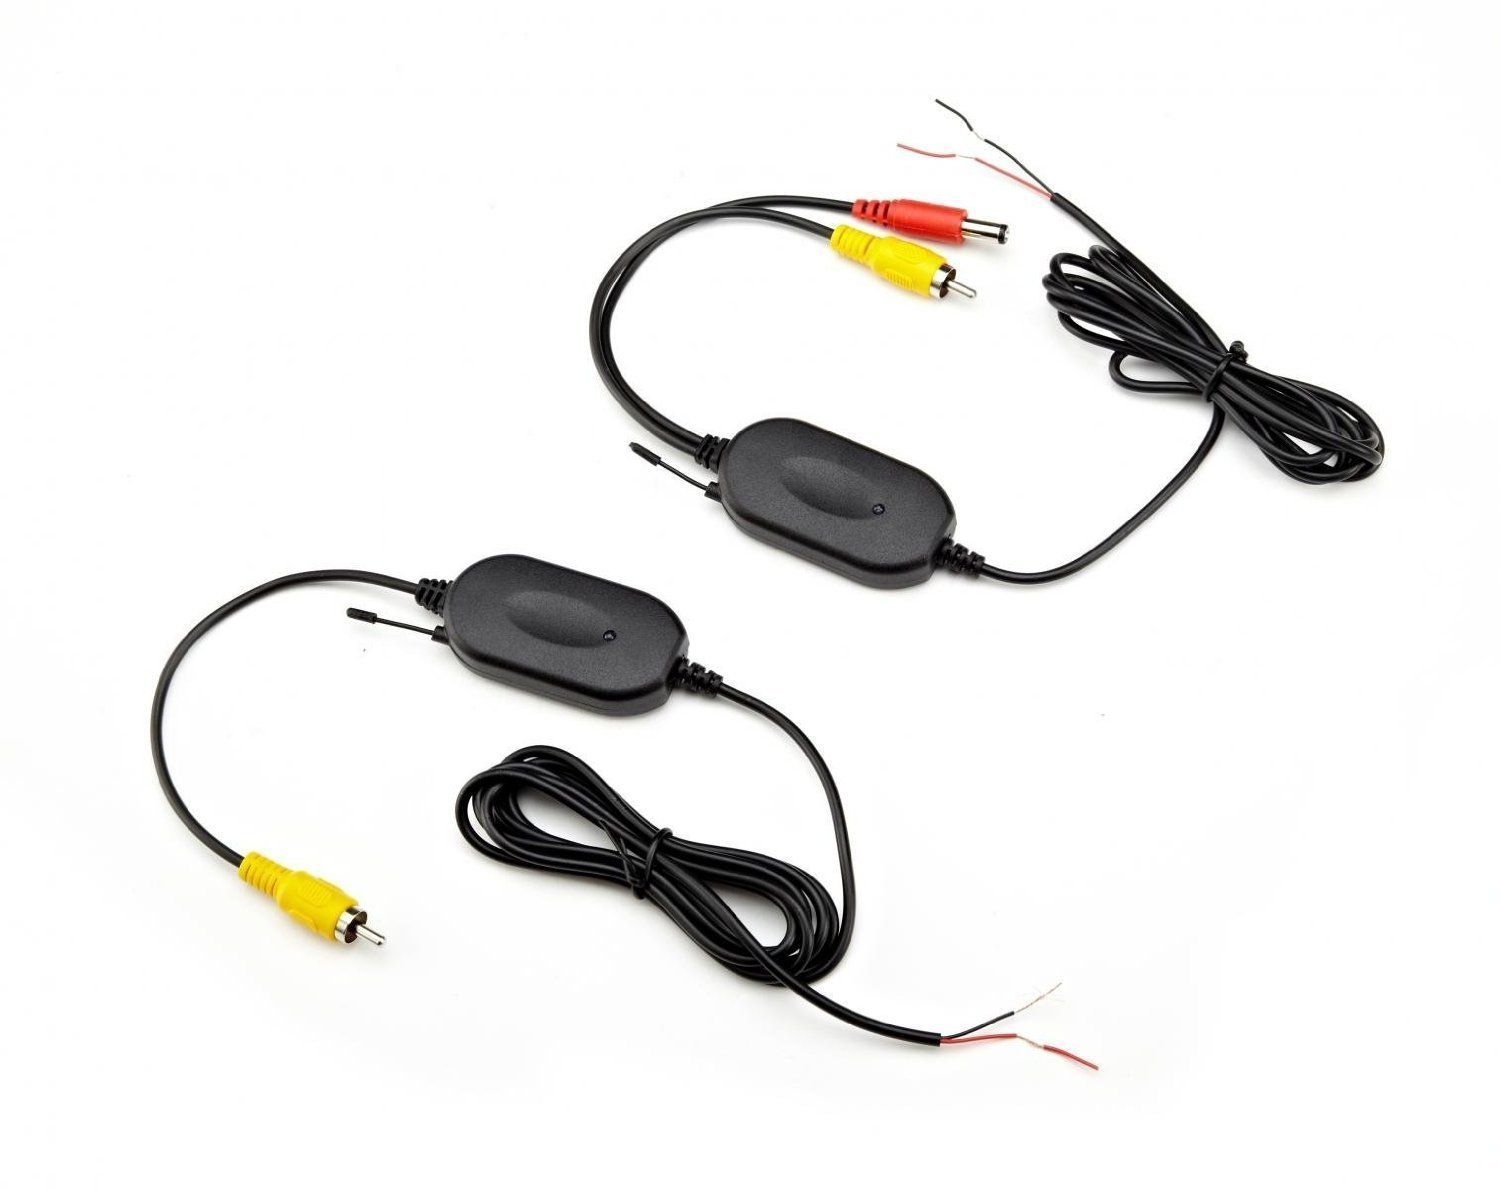 24g Wireless Color Video Transmitter And Receiver For The Vehicle Audio Backup Camera Front